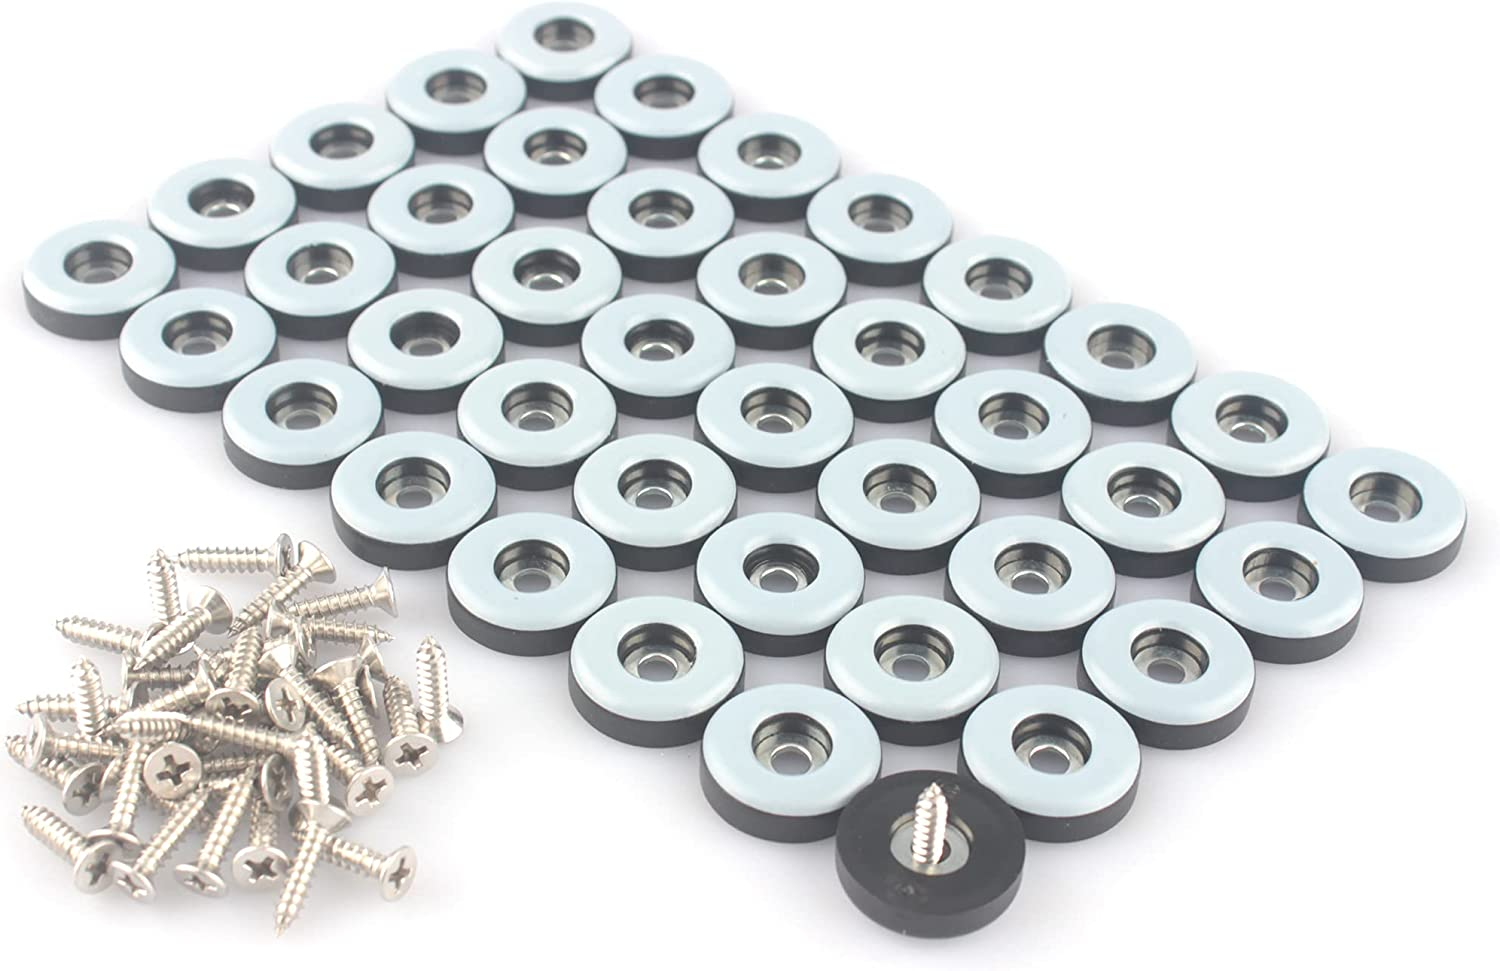 CSFMC Teflon Furniture Sliders Pads(40 Pack 7/8 inch(22mm) Base),Table/Chair/Cabinet/Sofa Small Size PTFE Glides,Stainless Steel Screw on Protect The Floor,Heavy Duty Sliding Block for Furniture